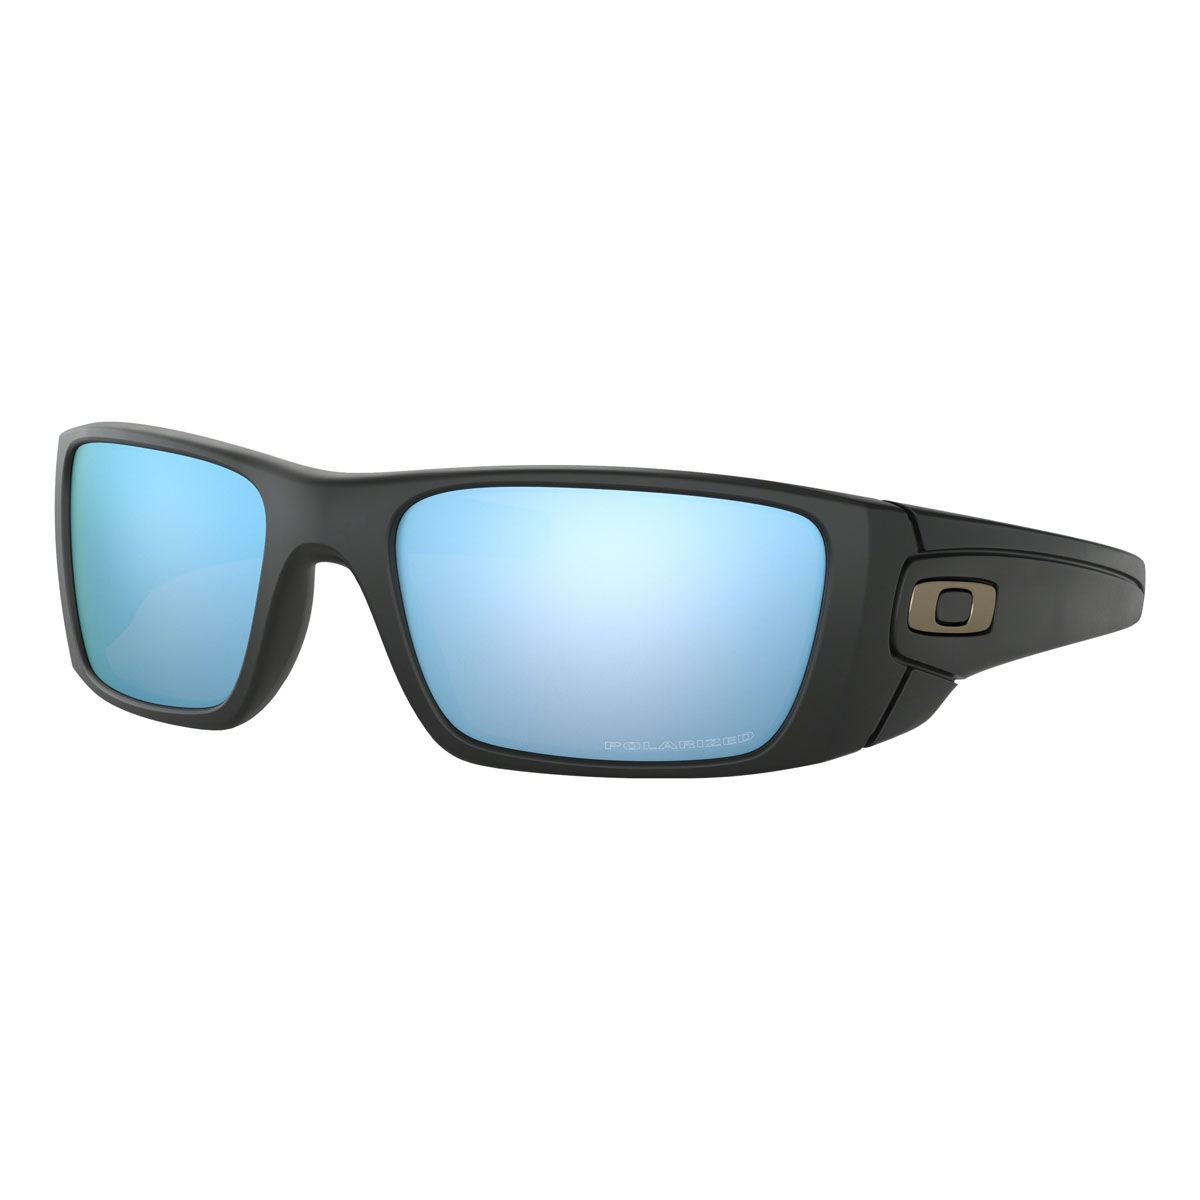 45dbfc3cfc05 Image of Oakley Fuel Cell Men s Polarized Sunglasses - Matte Black  Frame Prizm Deep Blue